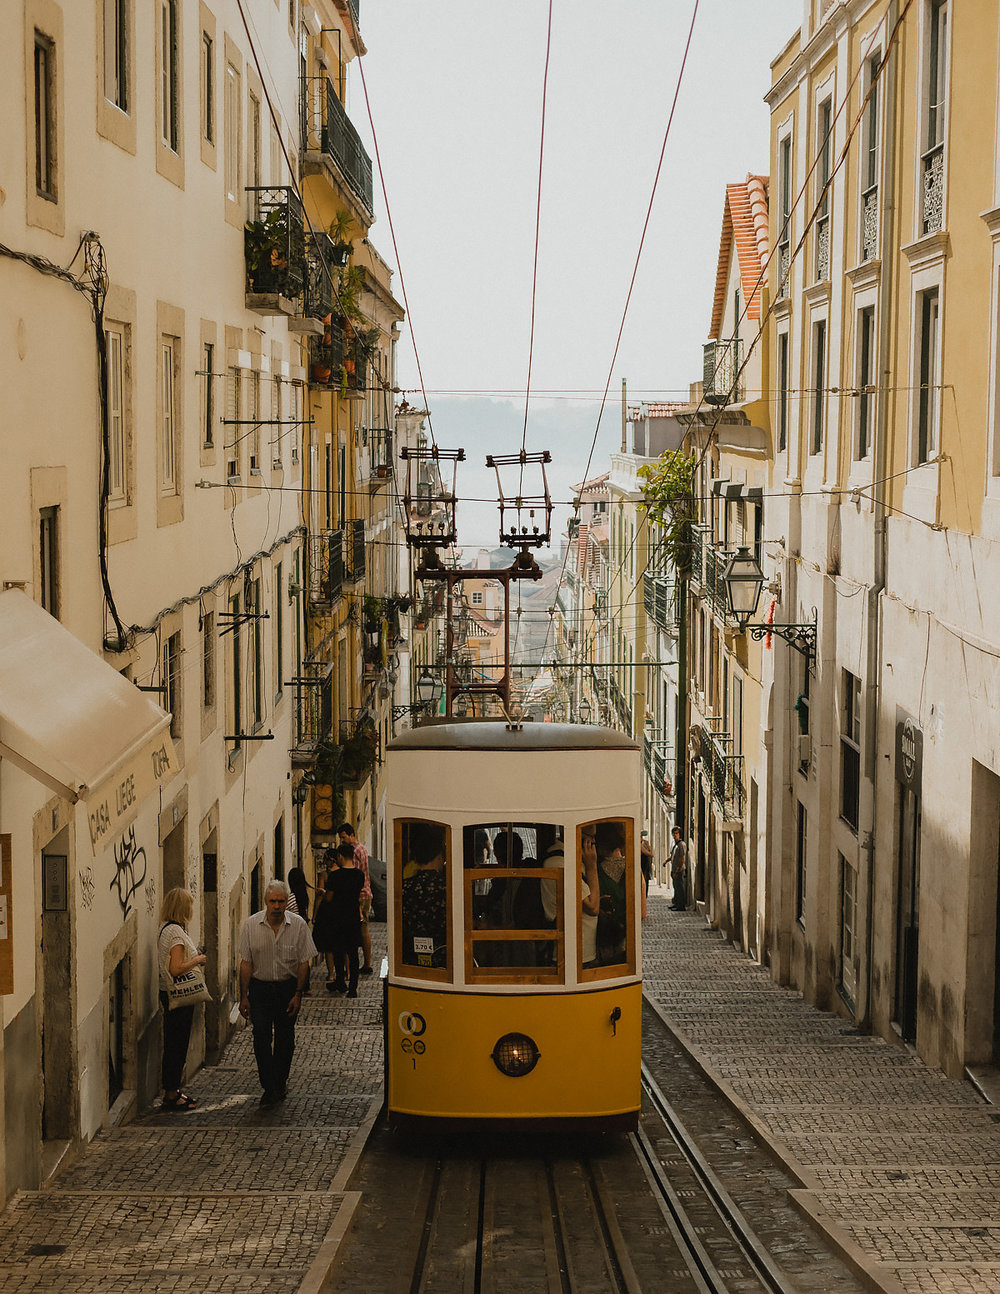 The infamous and picturesque Tram 28 that runs throughout all of Lisbon —a t one point it sort of felt like it was following us around the city!